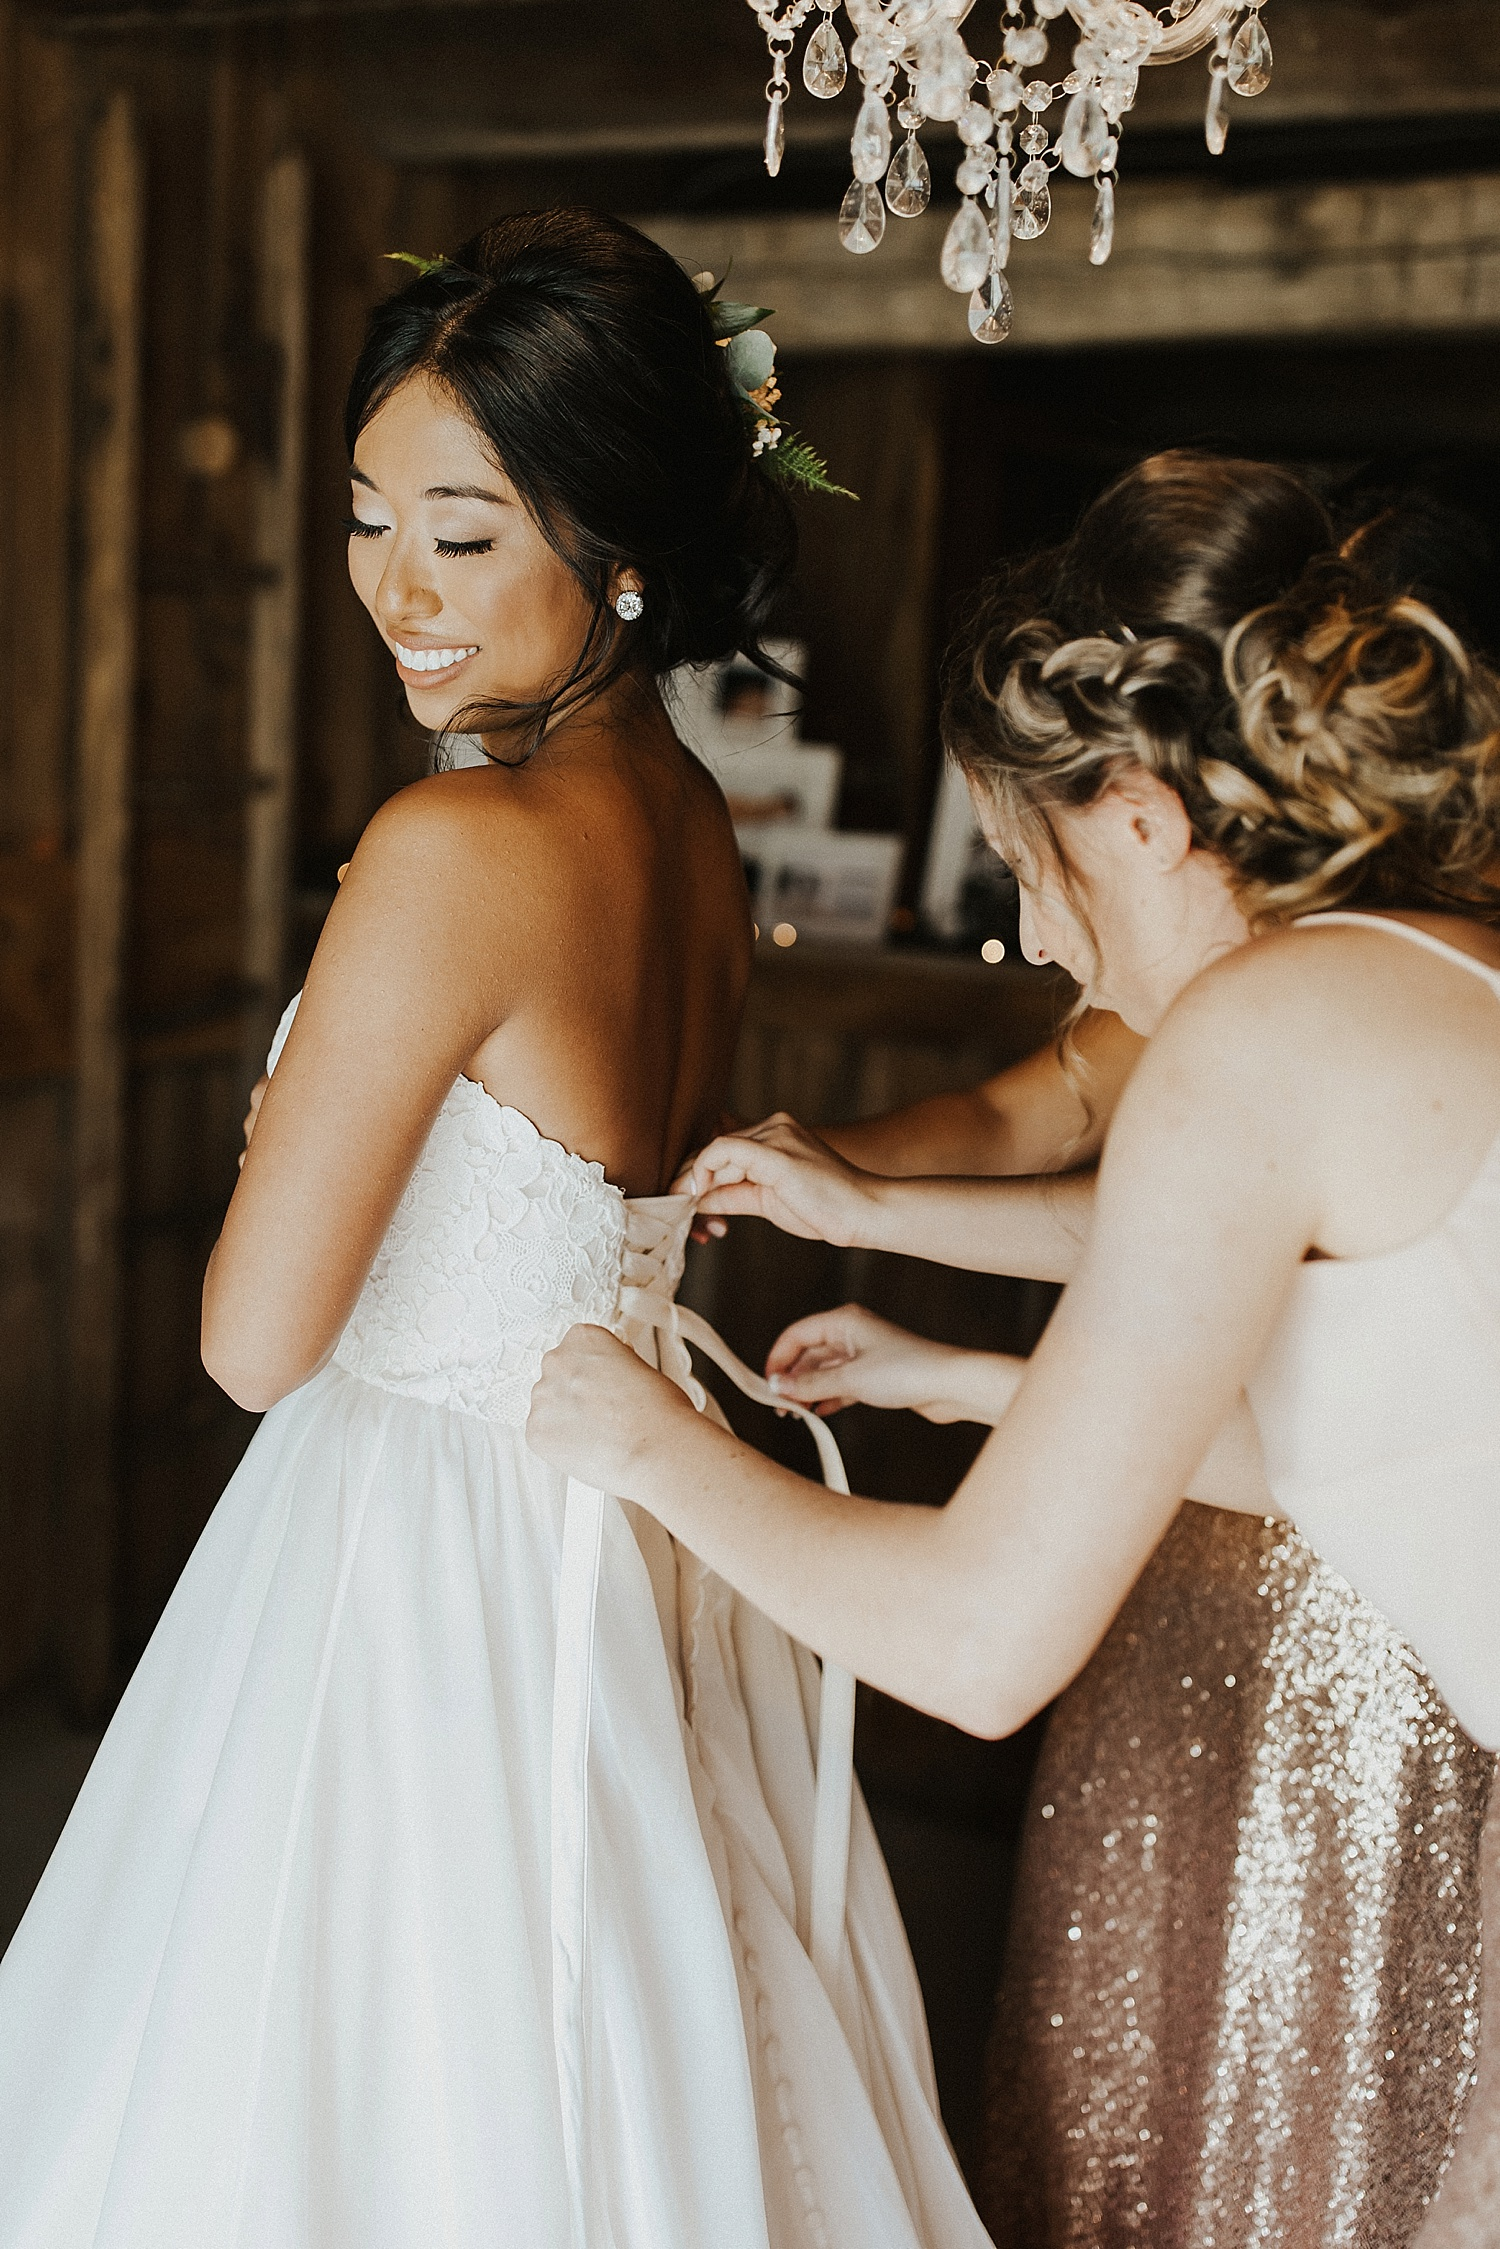 Bridesmaid helping the bride fasten her dress